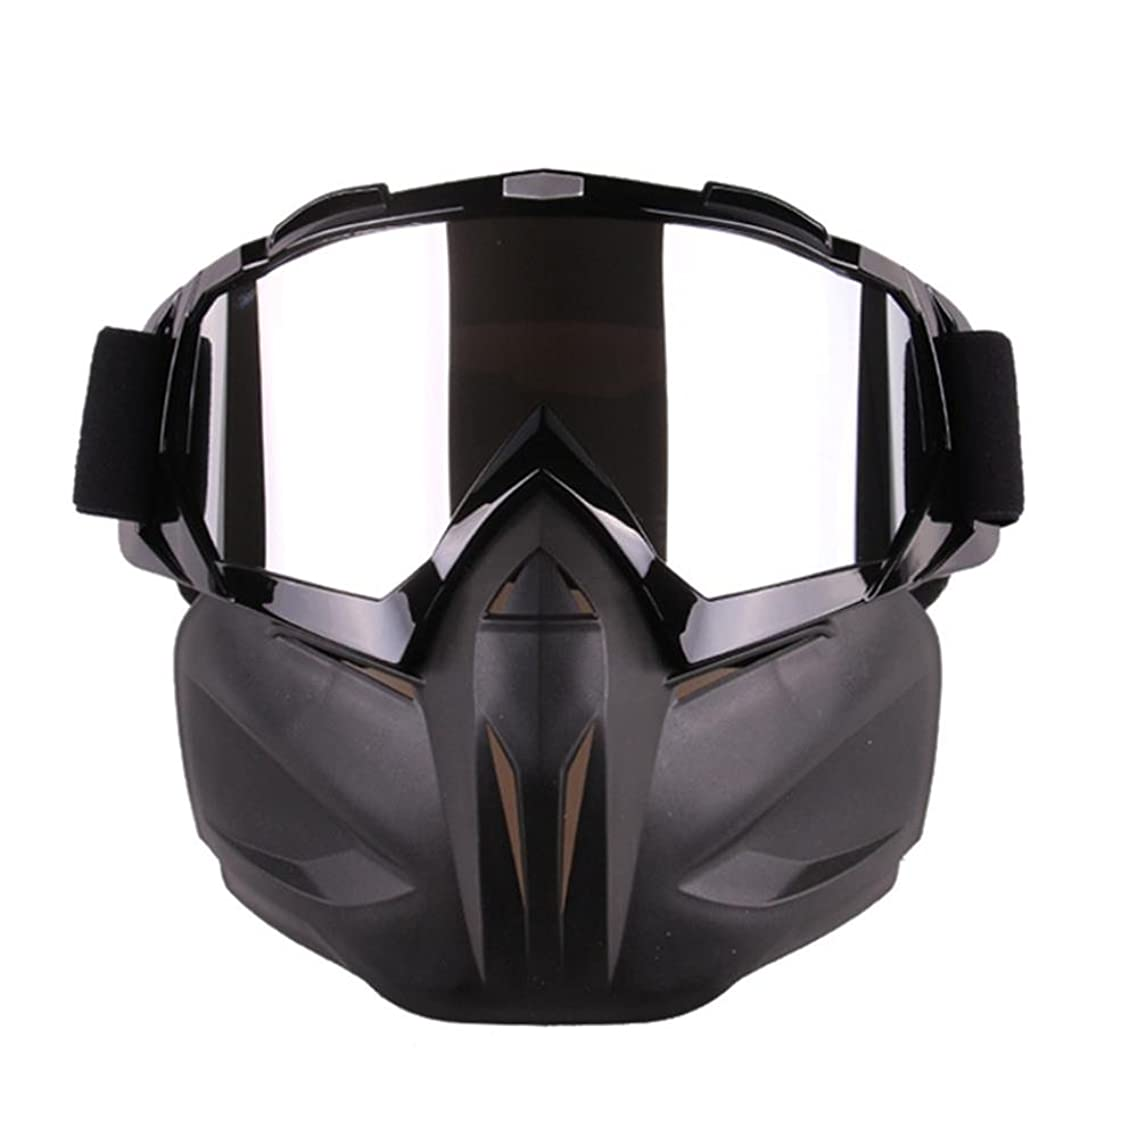 2017 New Arrival Motorcycle Goggles With Detachable Mask, Anti-Fog Windproof Motorcycle Goggles Face Mask Shield Motocross Goggles